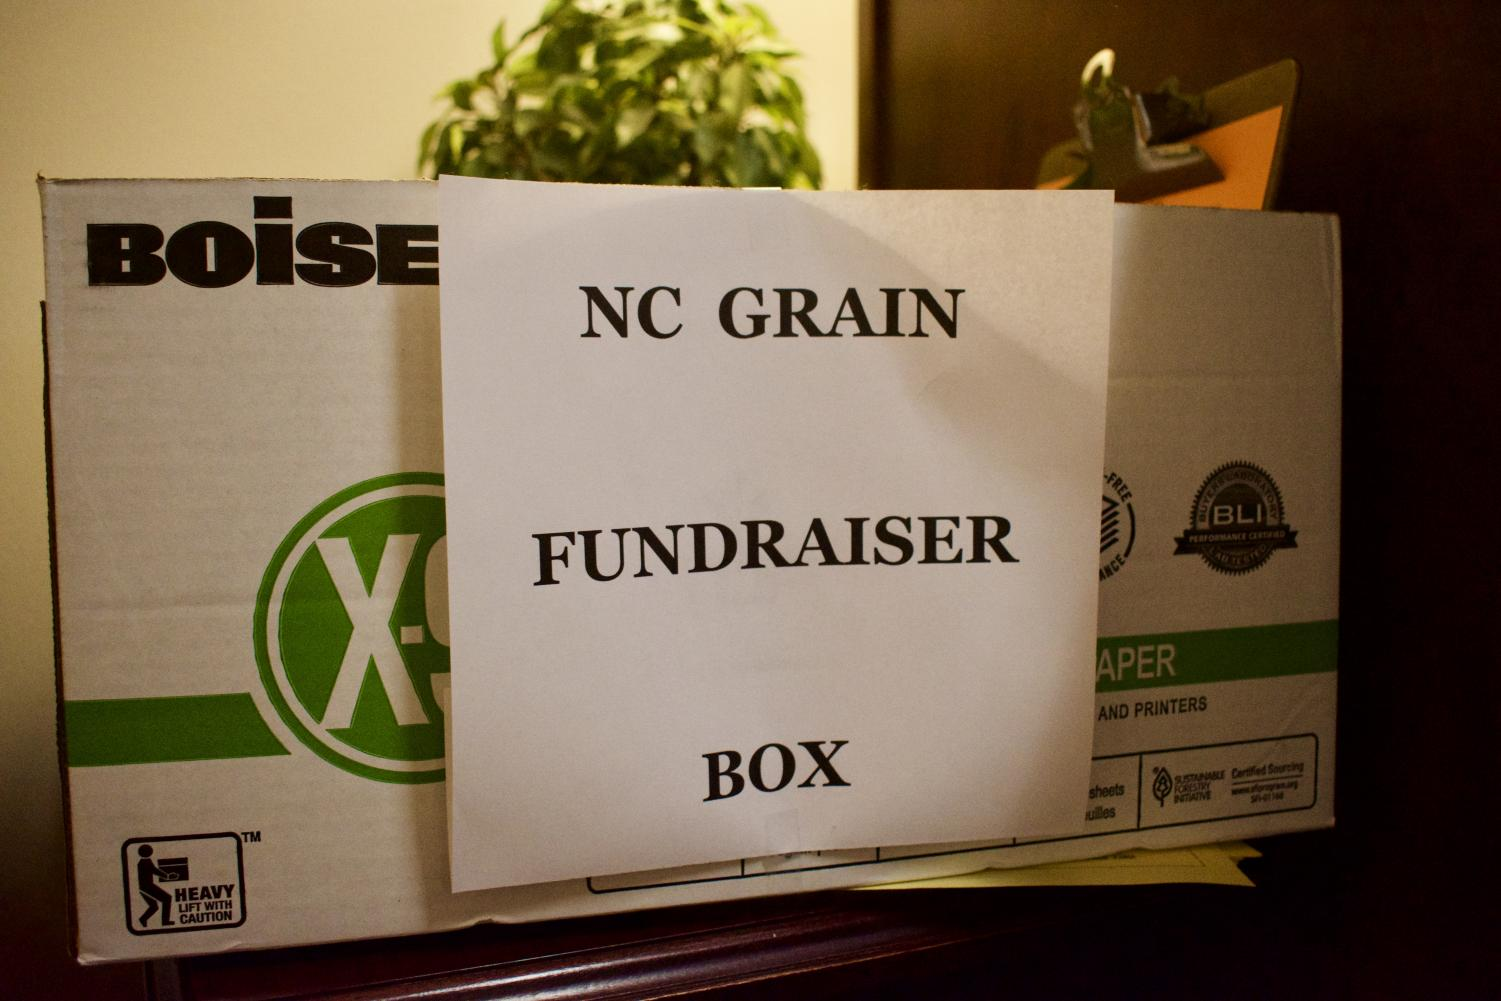 """Tribal Connections is currently hosting a Grain drive to gather various grain products, such as cereal, bread, and oatmeal, to send off to people in need. The Kennesaw Business Association (KBA), proposed the drive to TC, and its members encourage students to bring sugary and tasteful cereals and grain products to donate to children in need. """"I decided to engage in the drive to help kids and families in need. It's for a good cause and I know that I contributed something to these kids to make them happy,"""" Rahel Kefetew, head of the drive, said."""